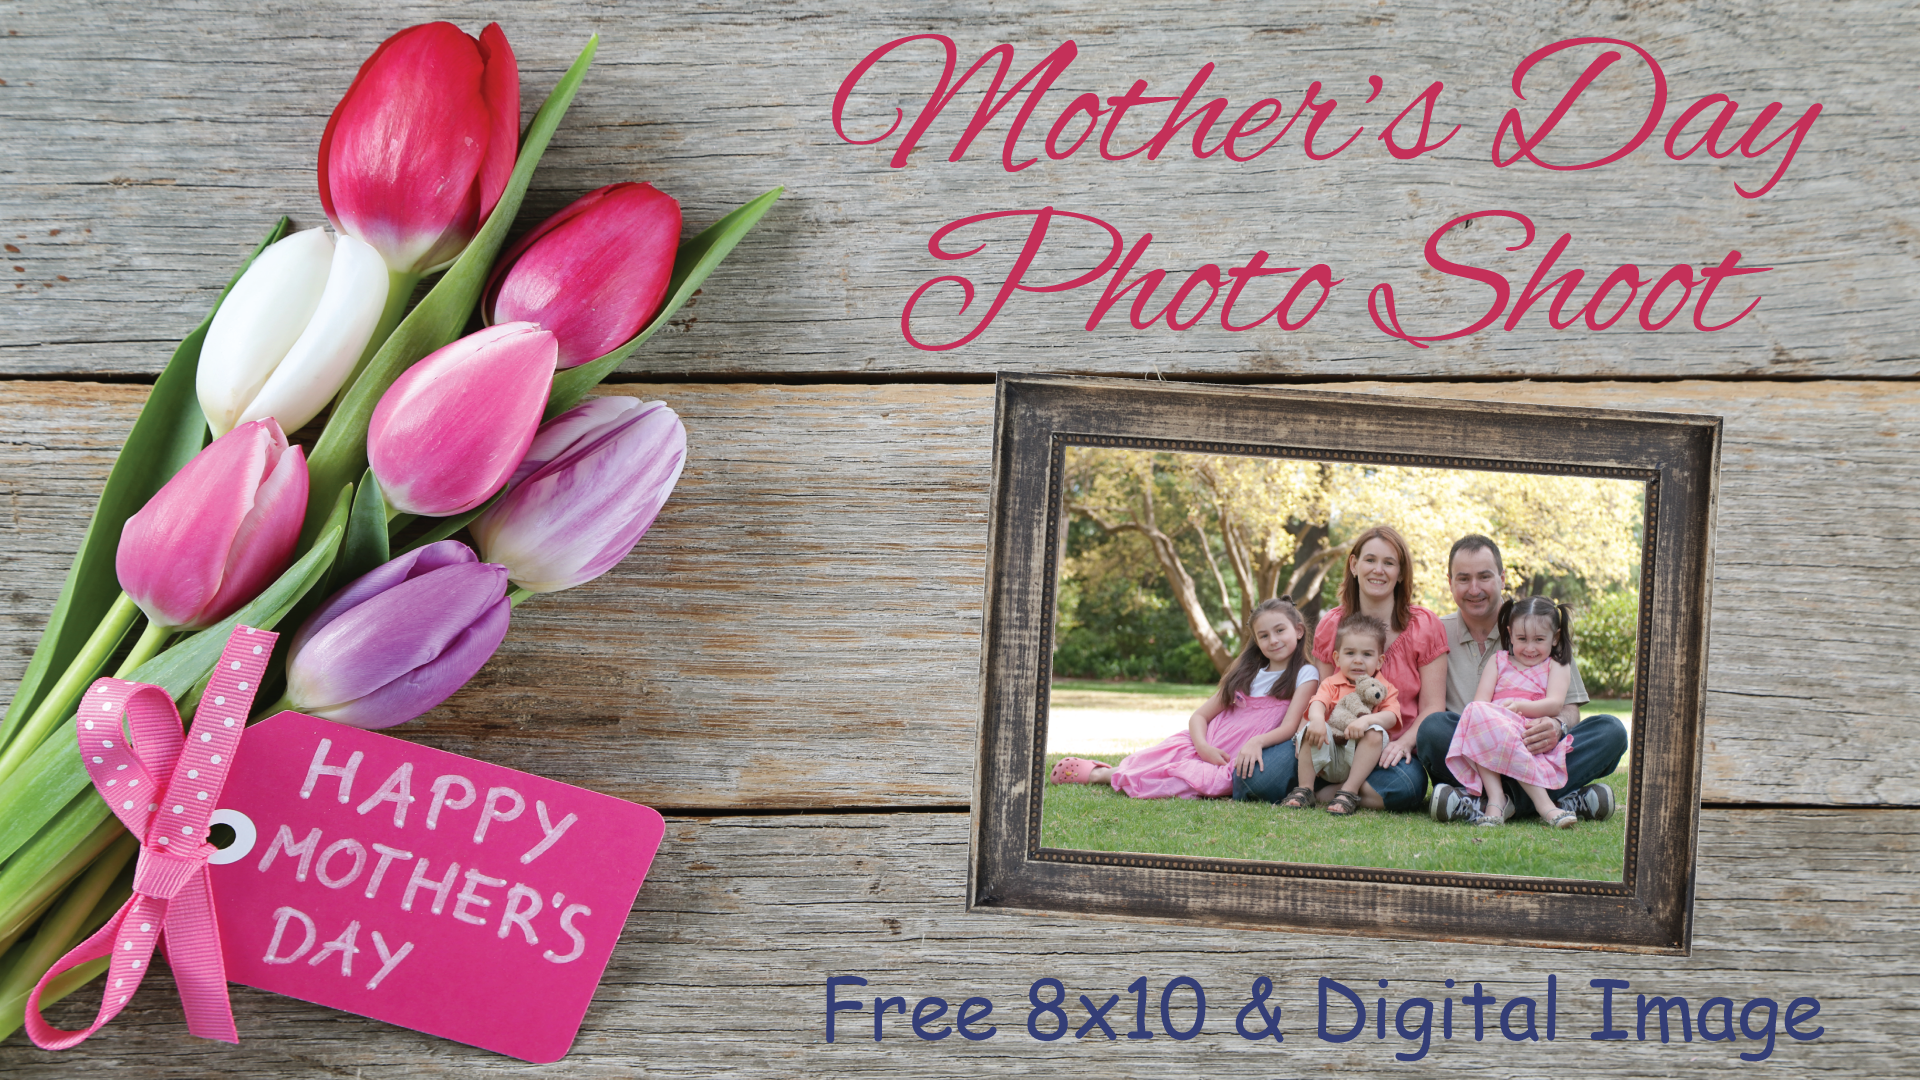 Celebrating Moms: Mother's Day Photoshoot